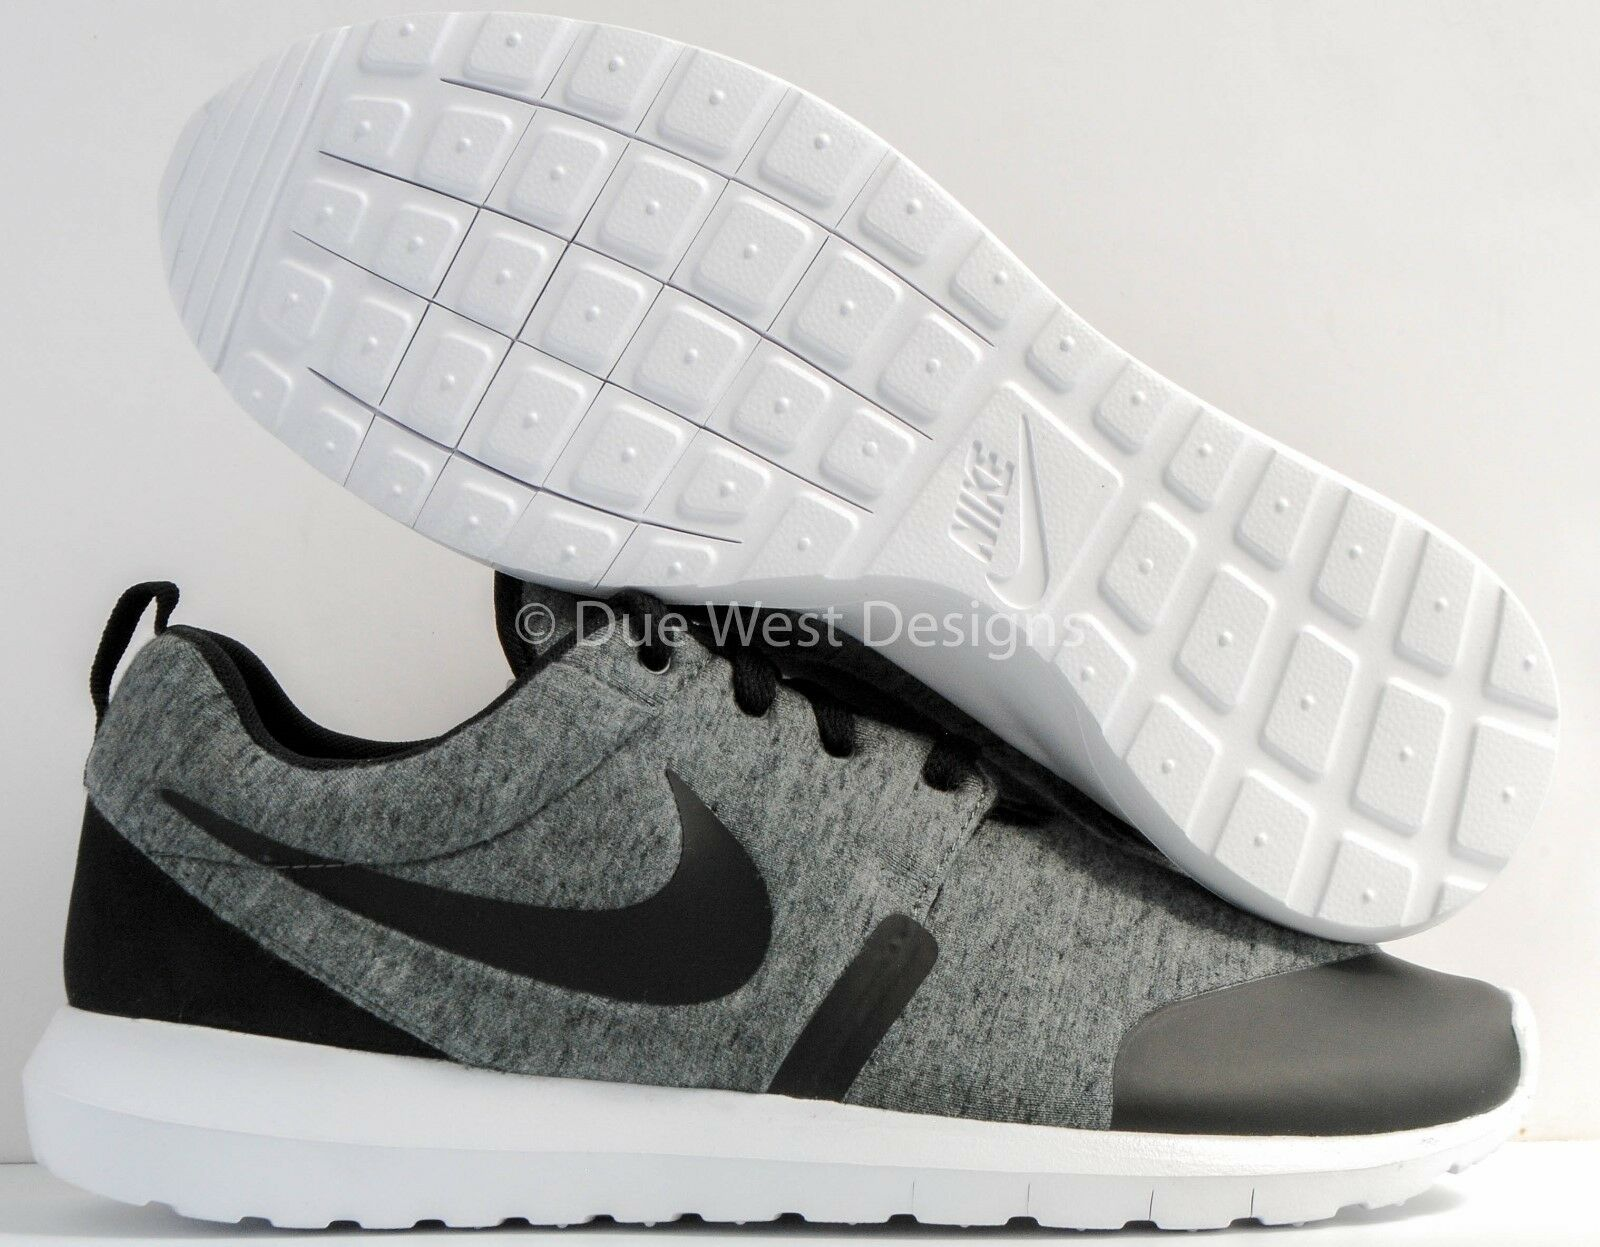 NIKE ROSHE NM TP TECH FLEECE presto Gris 8.5 negro air presto FLEECE acronym lunar off Blanco ea799c